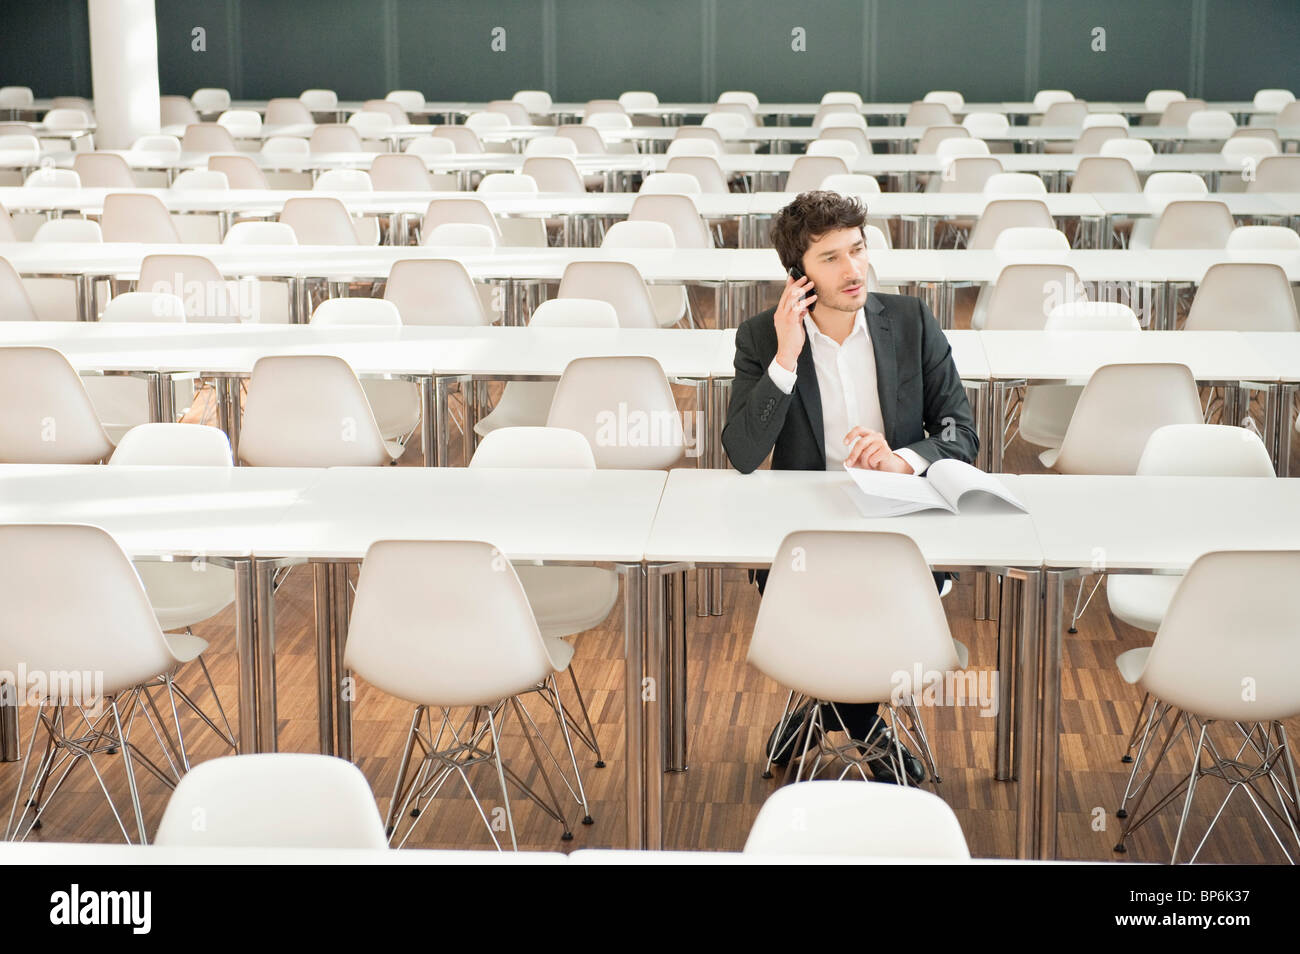 Businessman sitting at a cafeteria and talking on a mobile phone - Stock Image